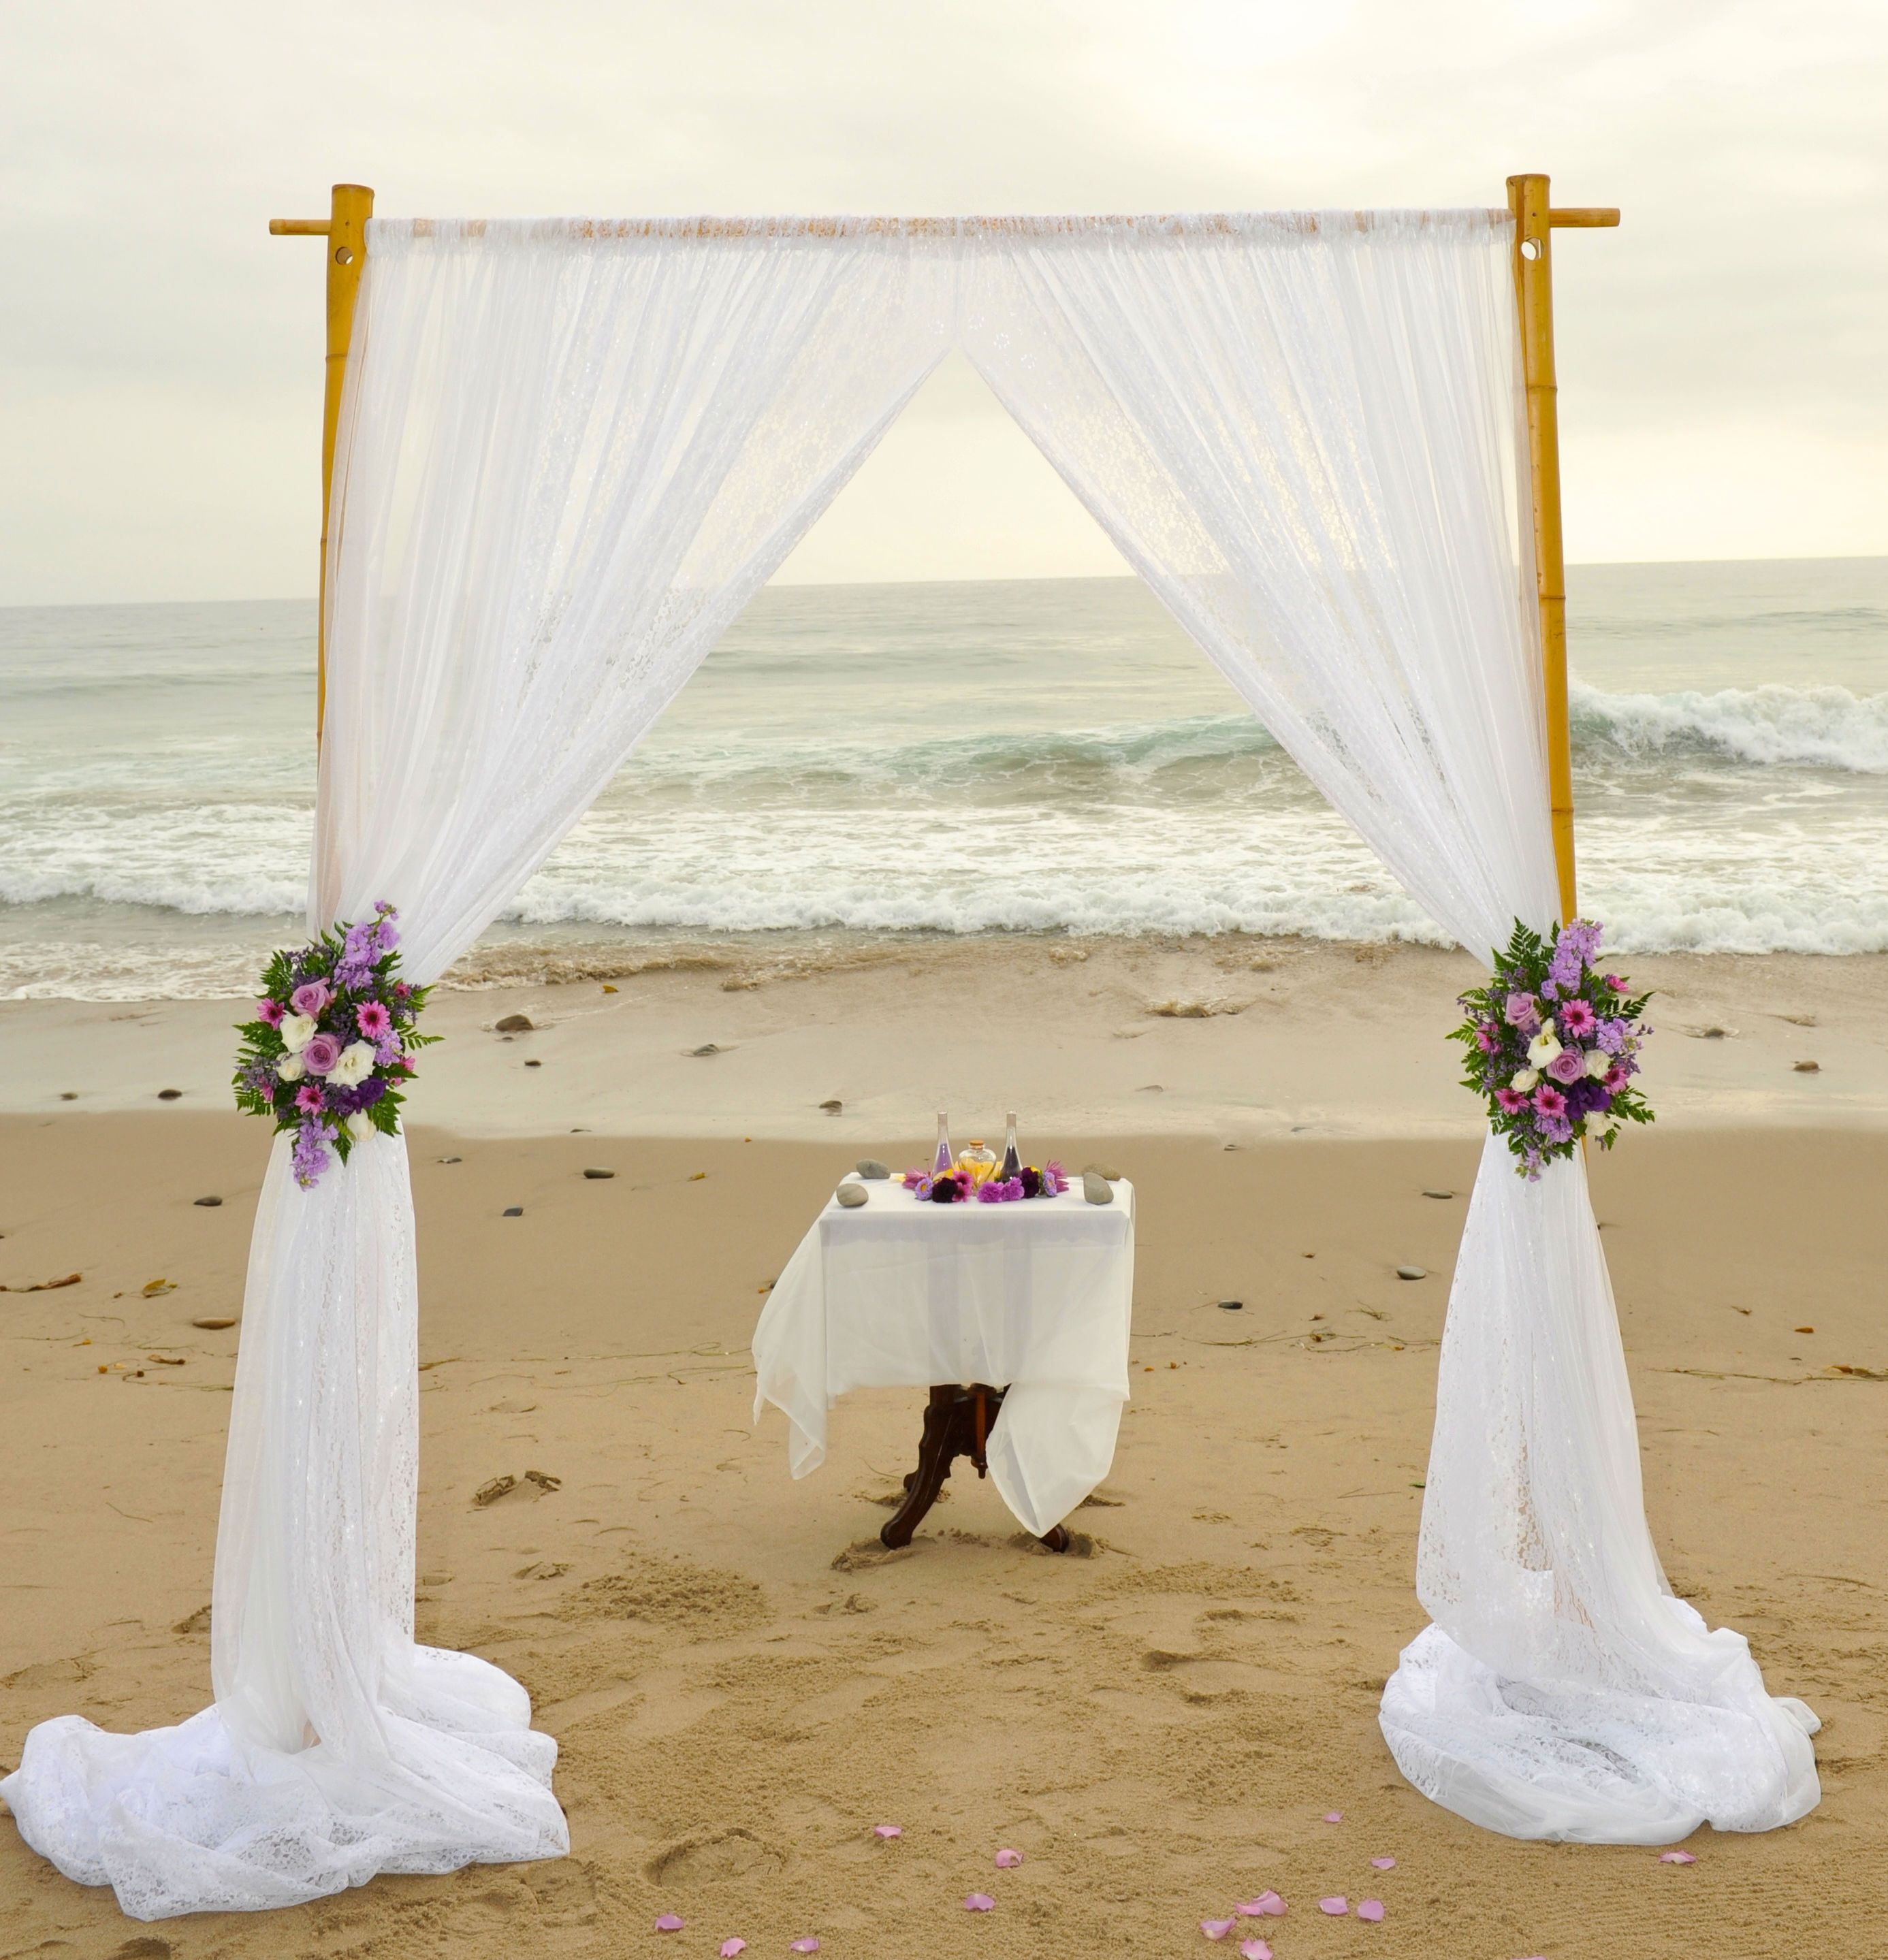 Bamboo Wedding Altar: Bamboo Wedding Arch, White Fabirc, Purple Flowers